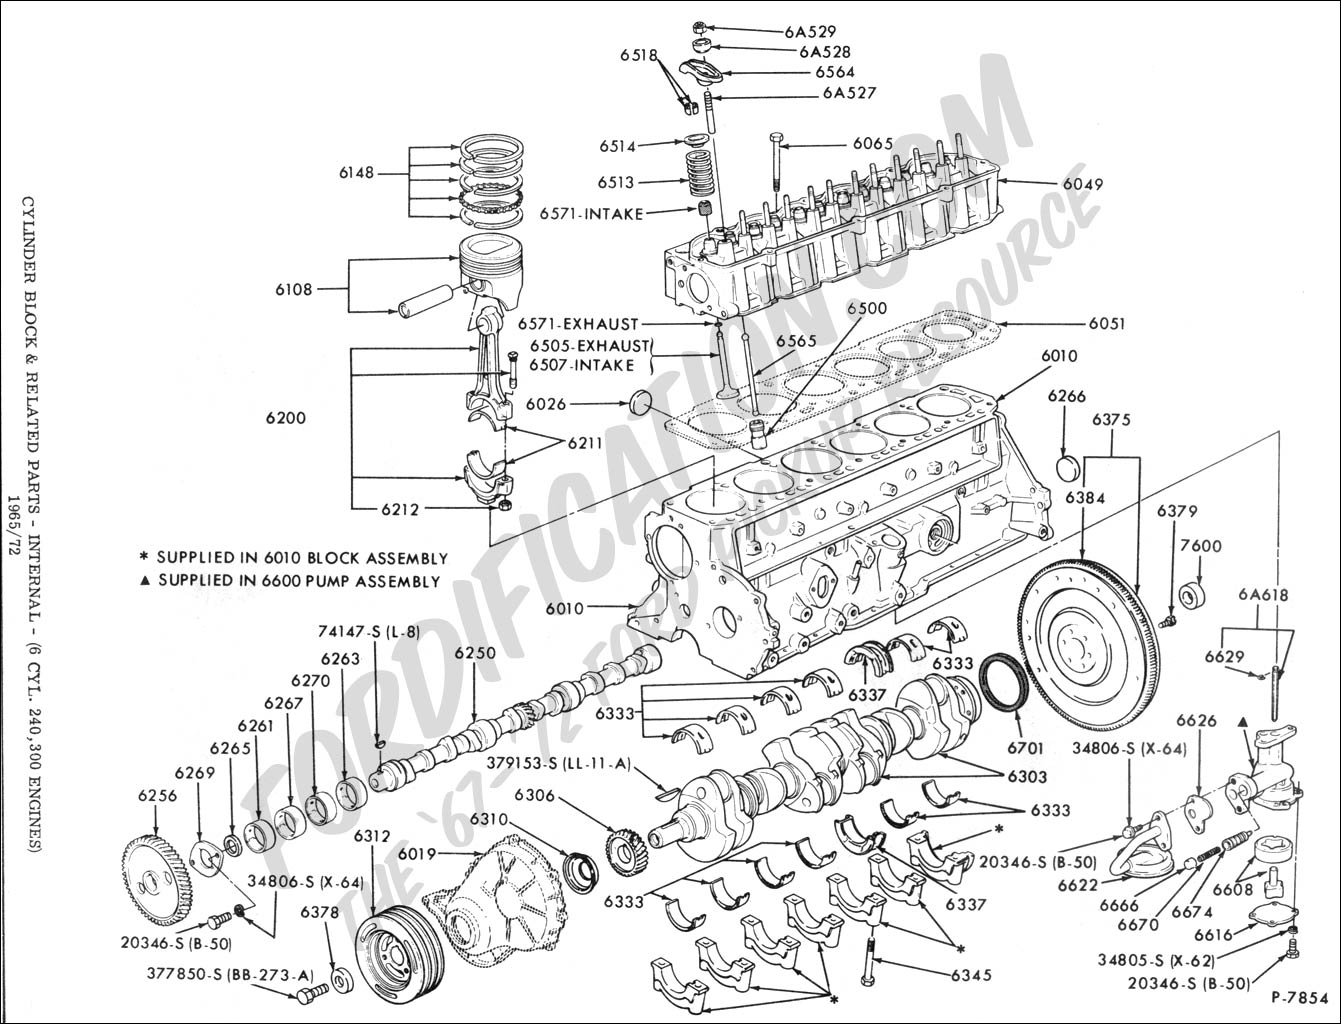 ford truck technical drawings and schematics section e engine and related components Ford Truck Transmission Parts Ford F 250 Parts Diagram